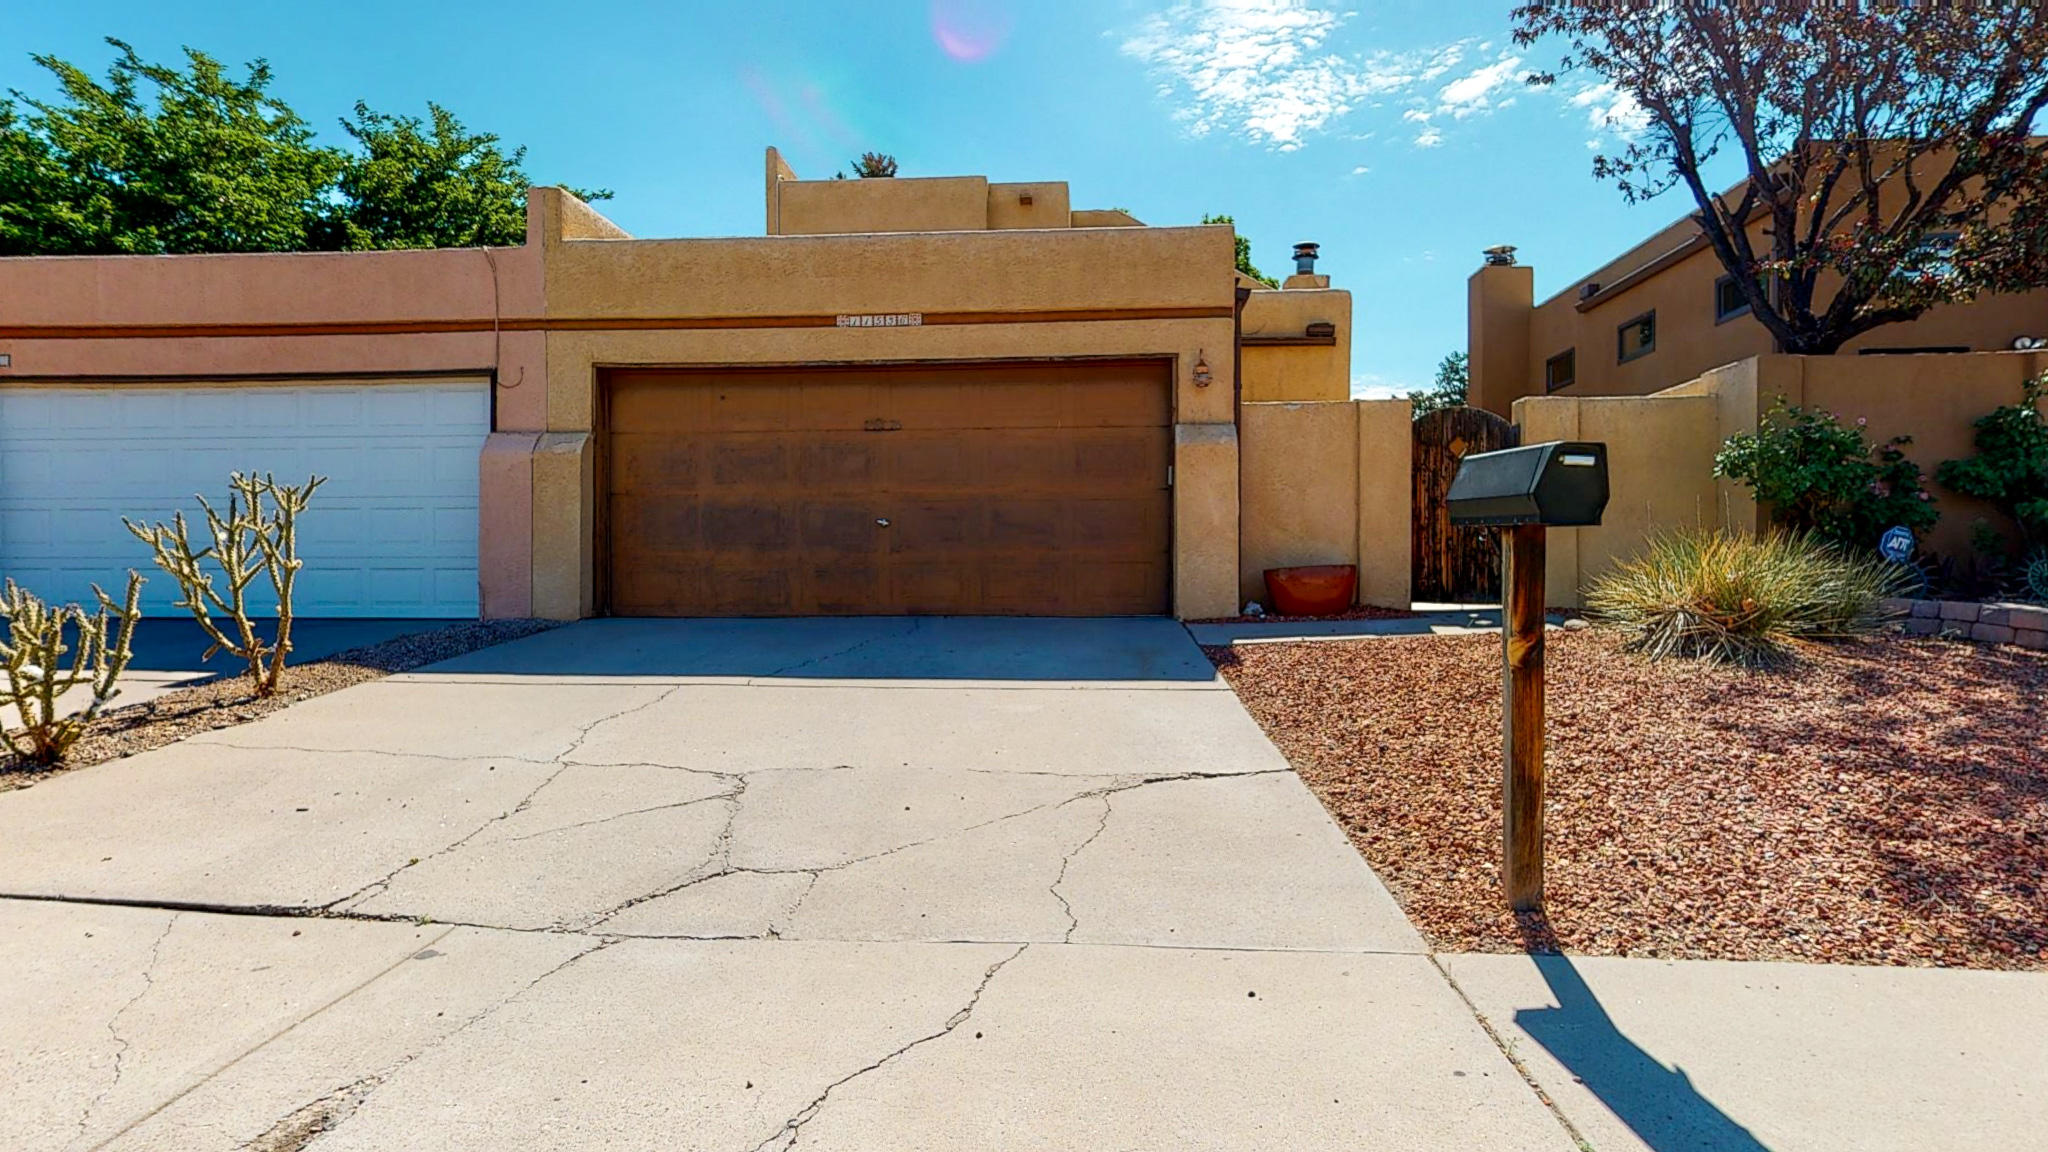 What a great location for this 3 bedroom town house. Great schools and close to shopping and restaurants. Private front courtyard and very private back yard. Home needs a little updating, bring your great ideas to make this your own. VIRTUAL TOUR AVAILABLE! Home has a new roof! This is a short sale.